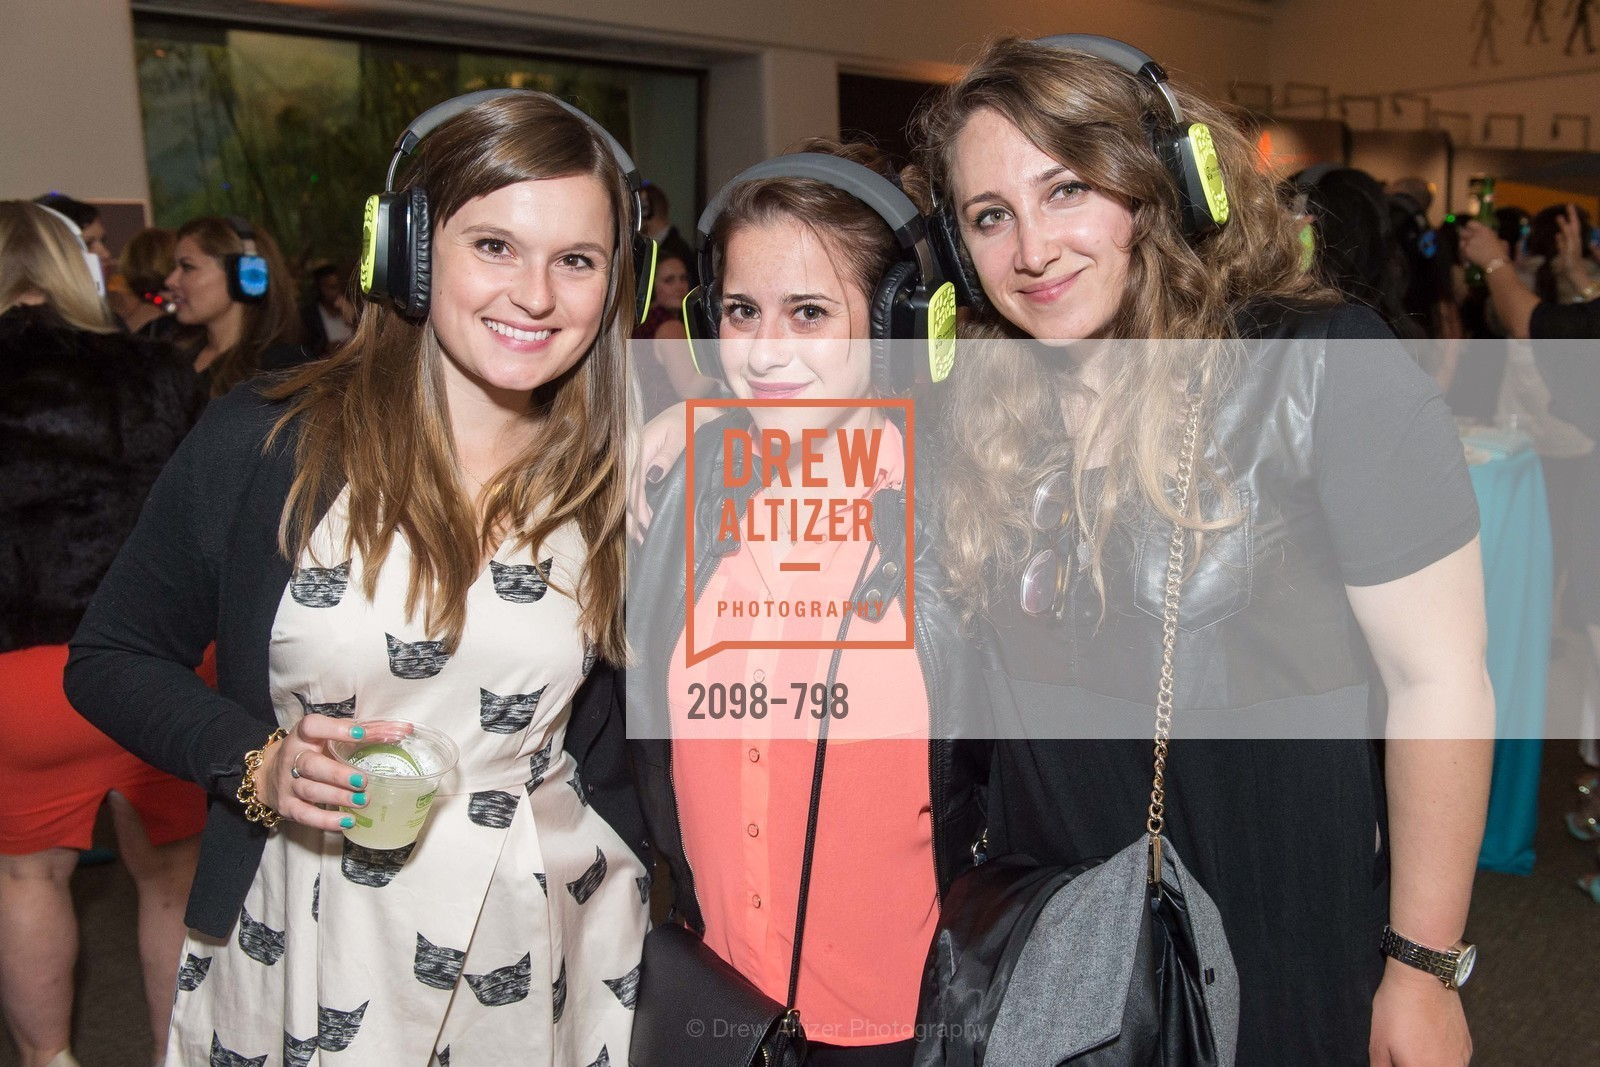 Megan Murphy, Carmona Chandler, Marianna Levyasa, CALIFORNIA ACADEMY OF SCIENCES - Big Bang Gala 2015, US, April 24th, 2015,Drew Altizer, Drew Altizer Photography, full-service agency, private events, San Francisco photographer, photographer california